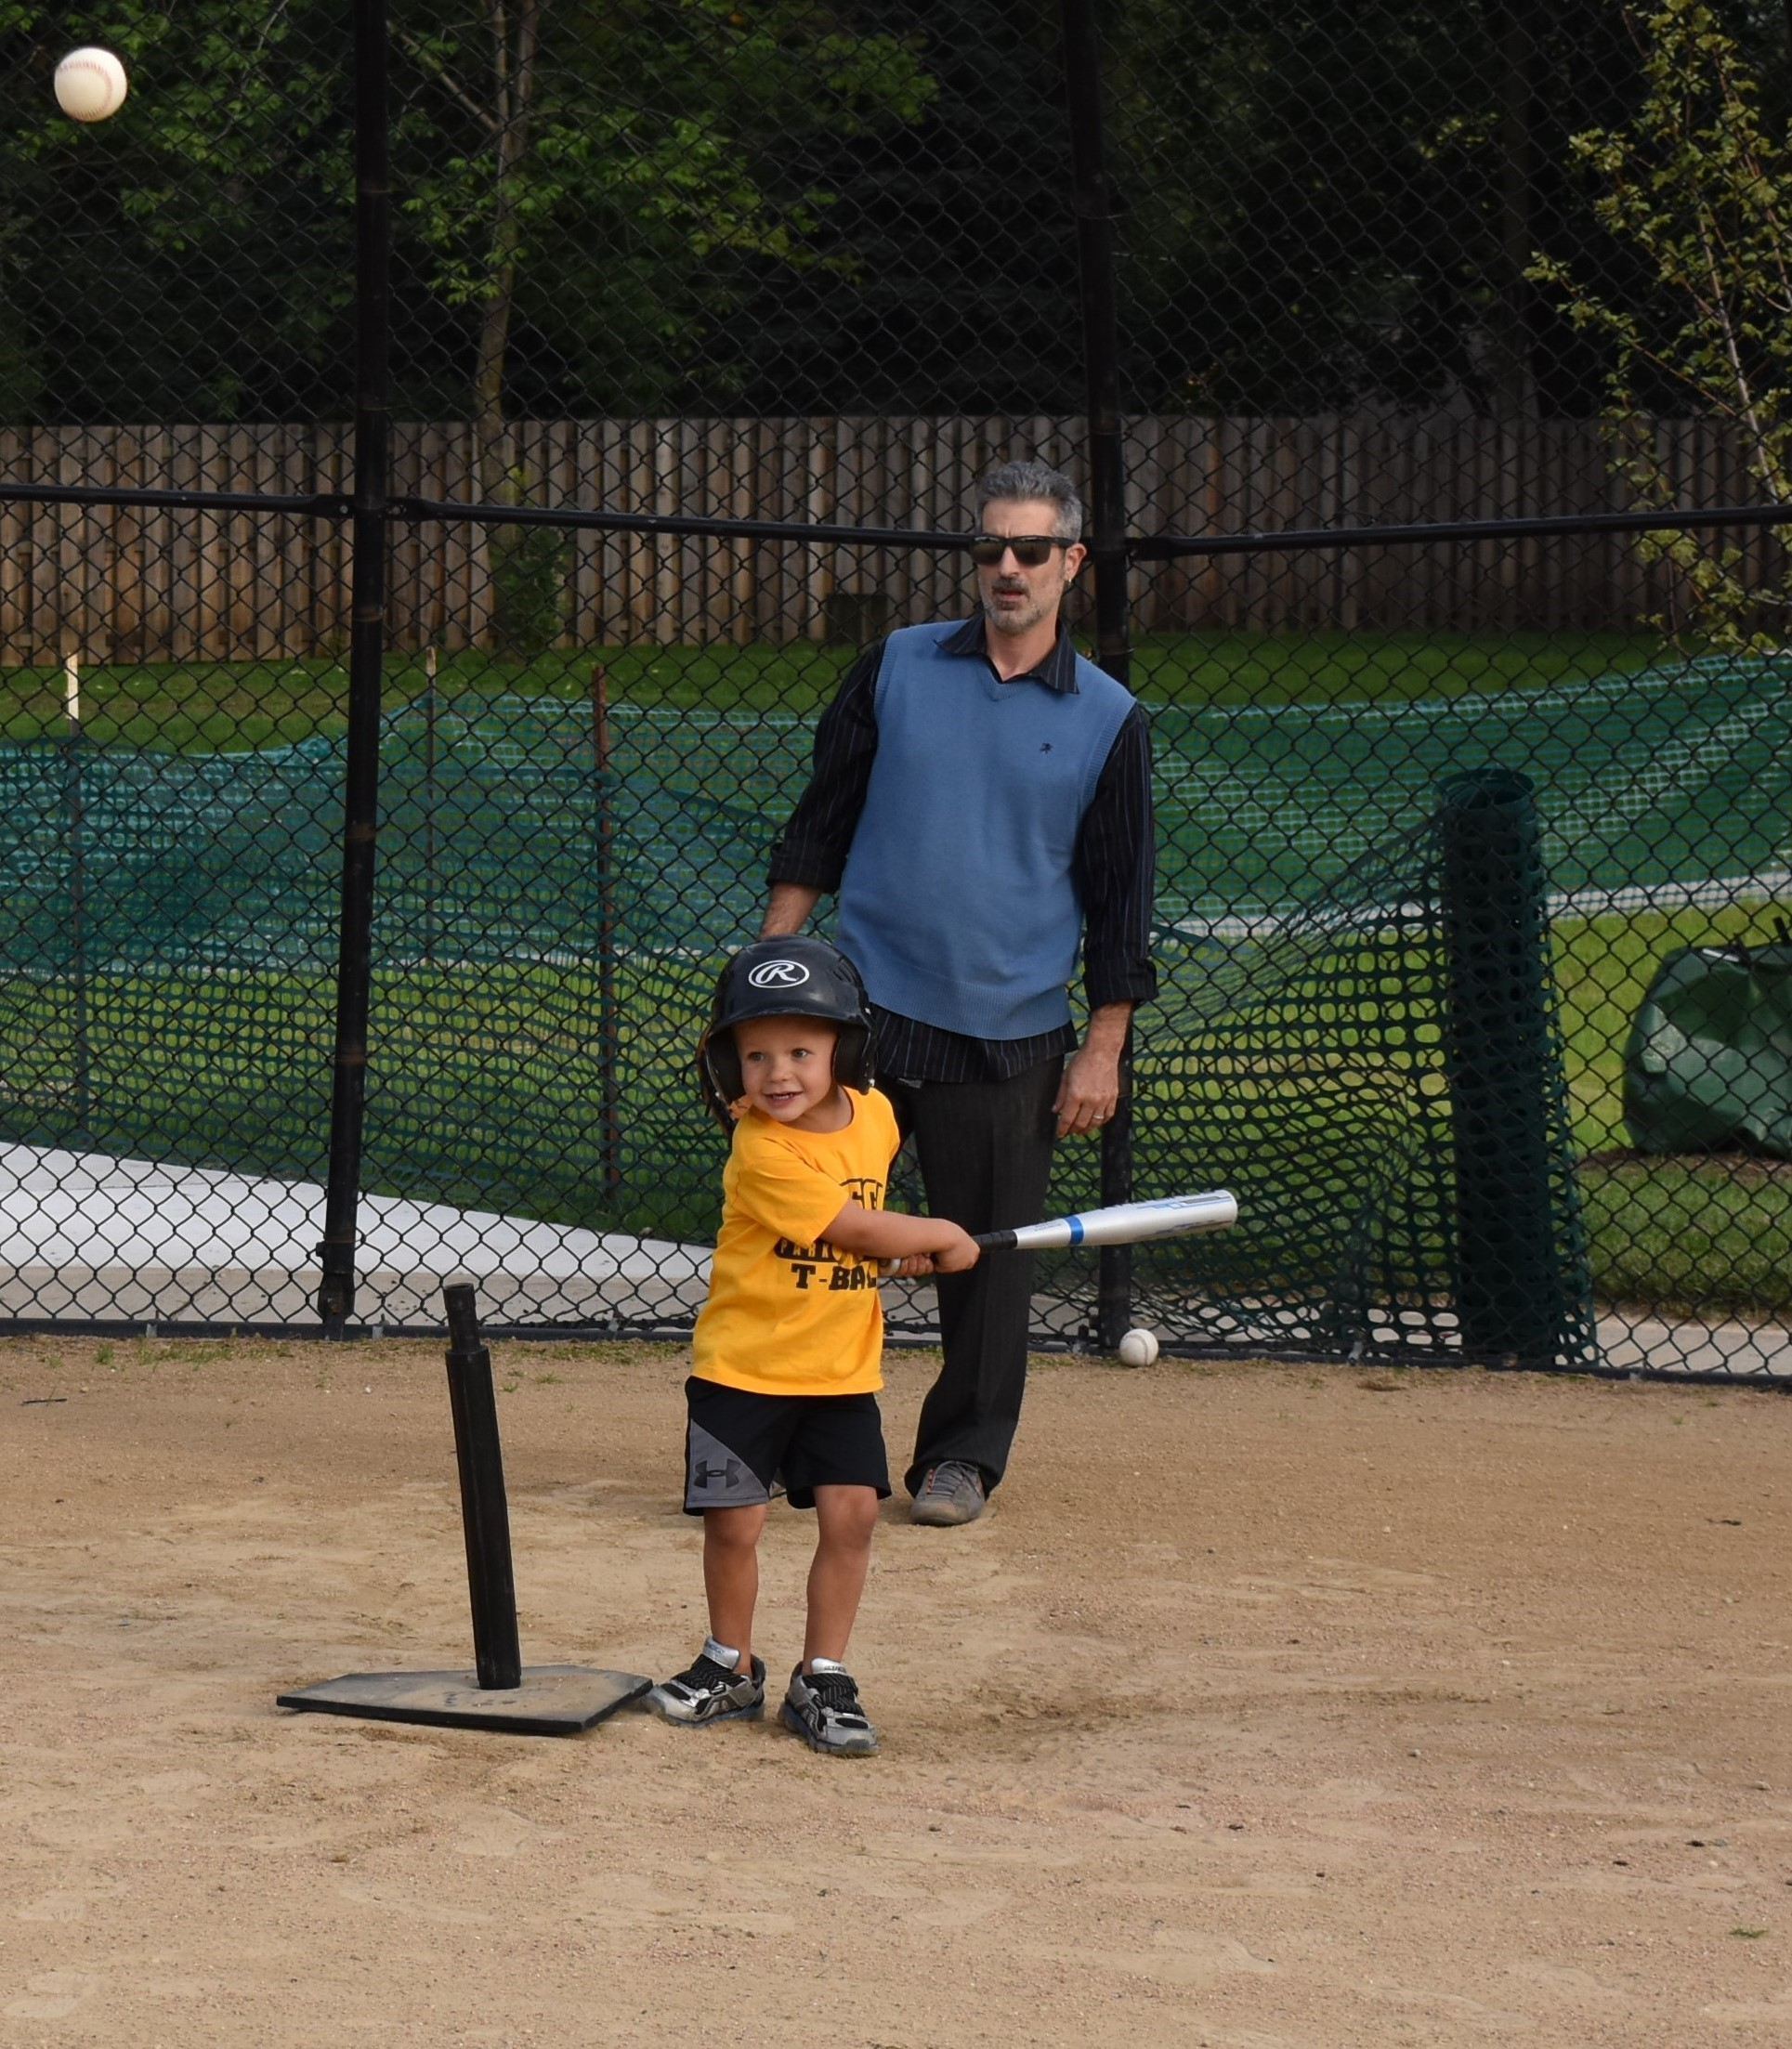 TBall WS 2020 cropped.jpg